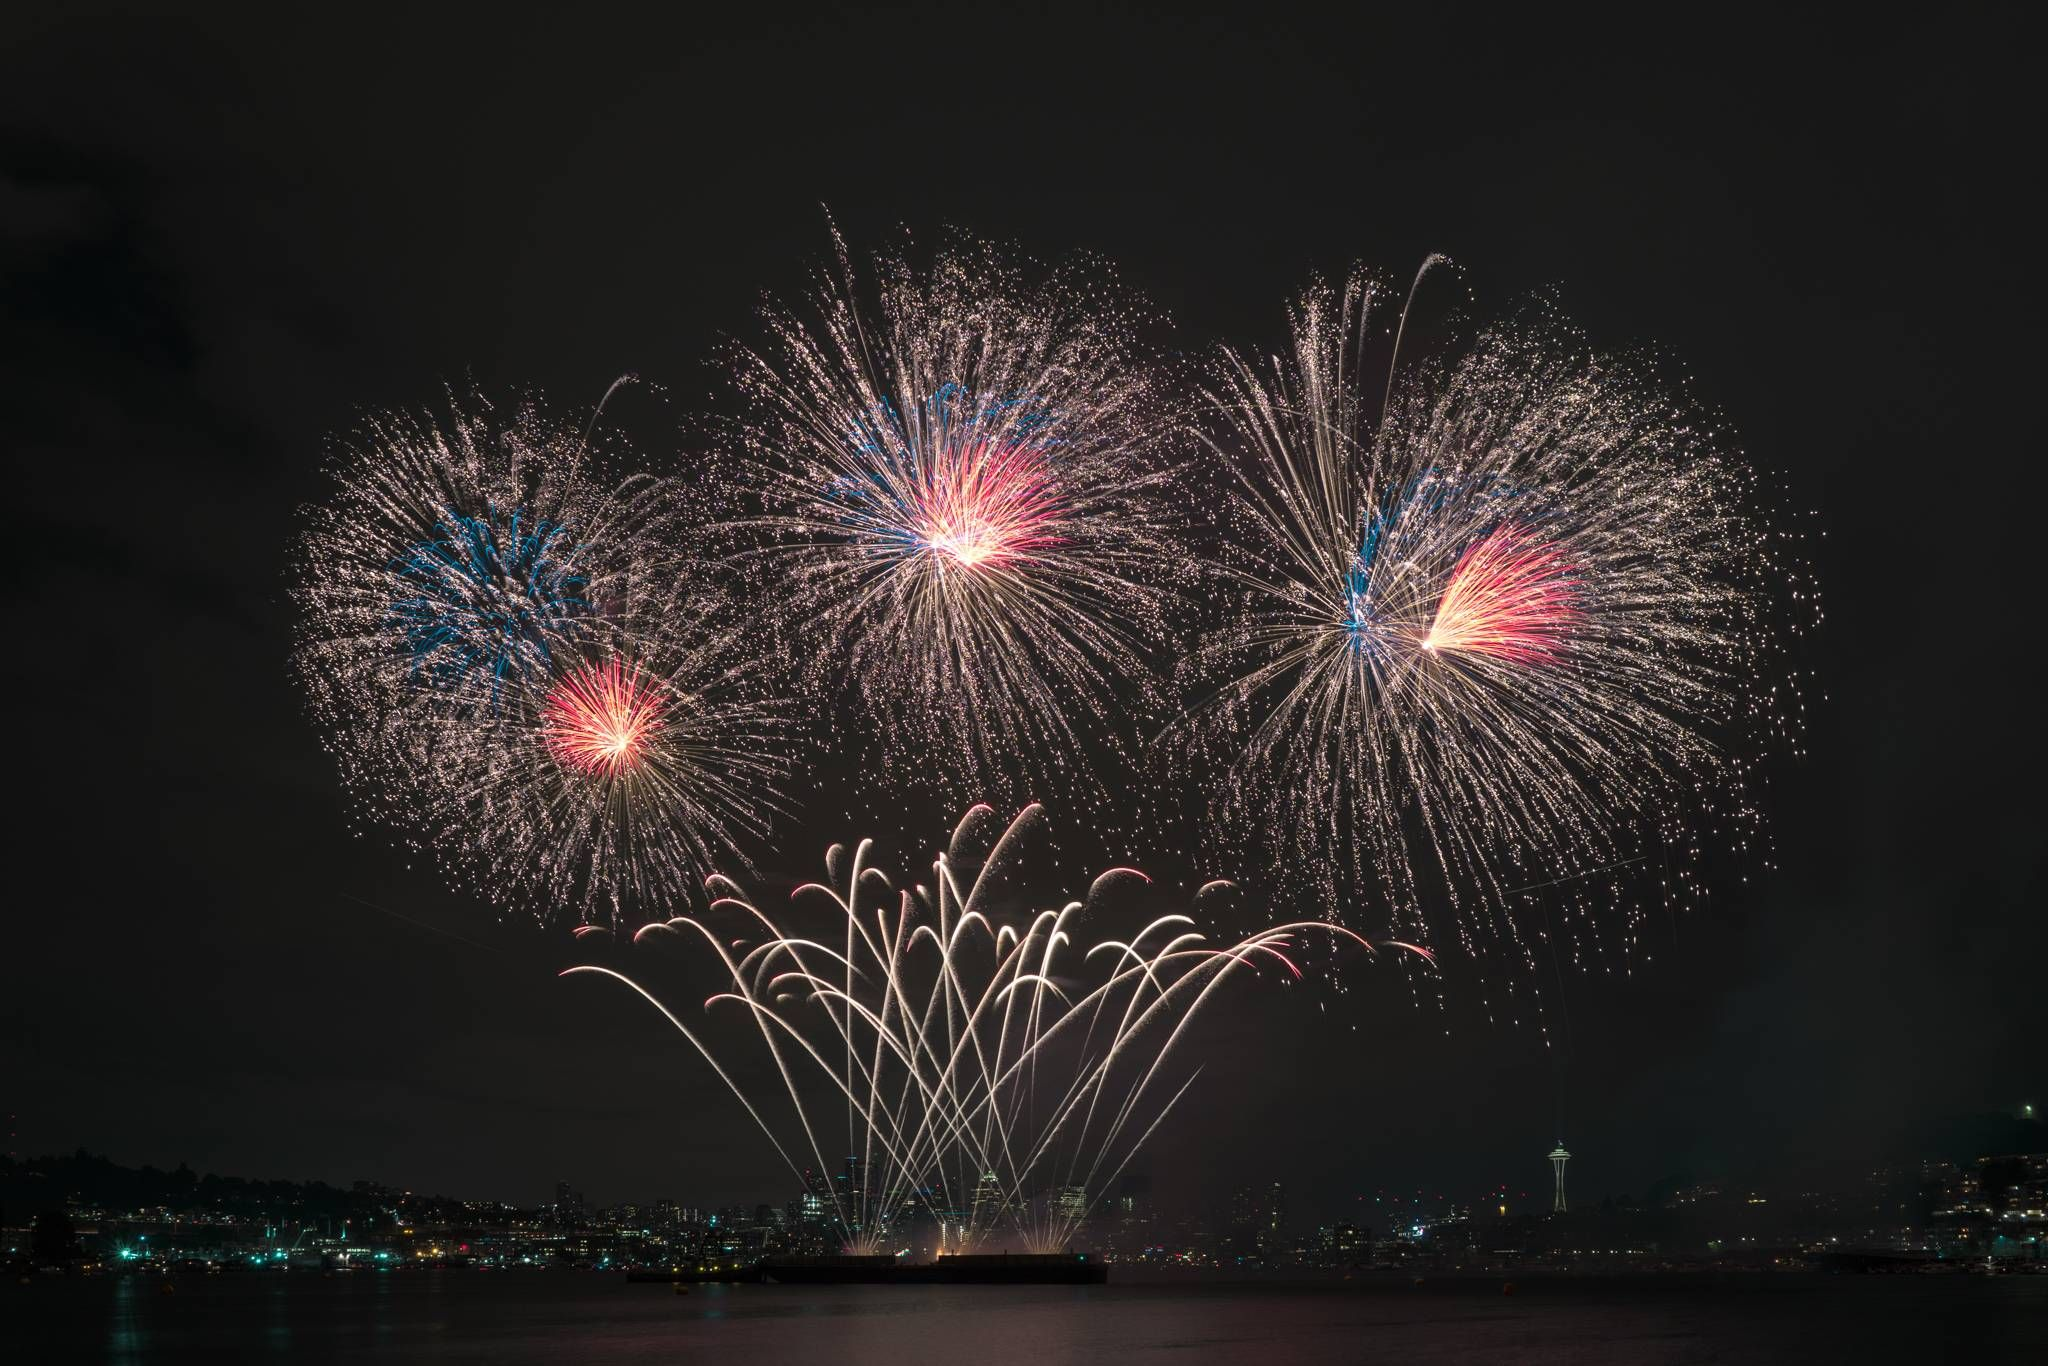 Tonightus fireworks above lake union seattle awesome pictures